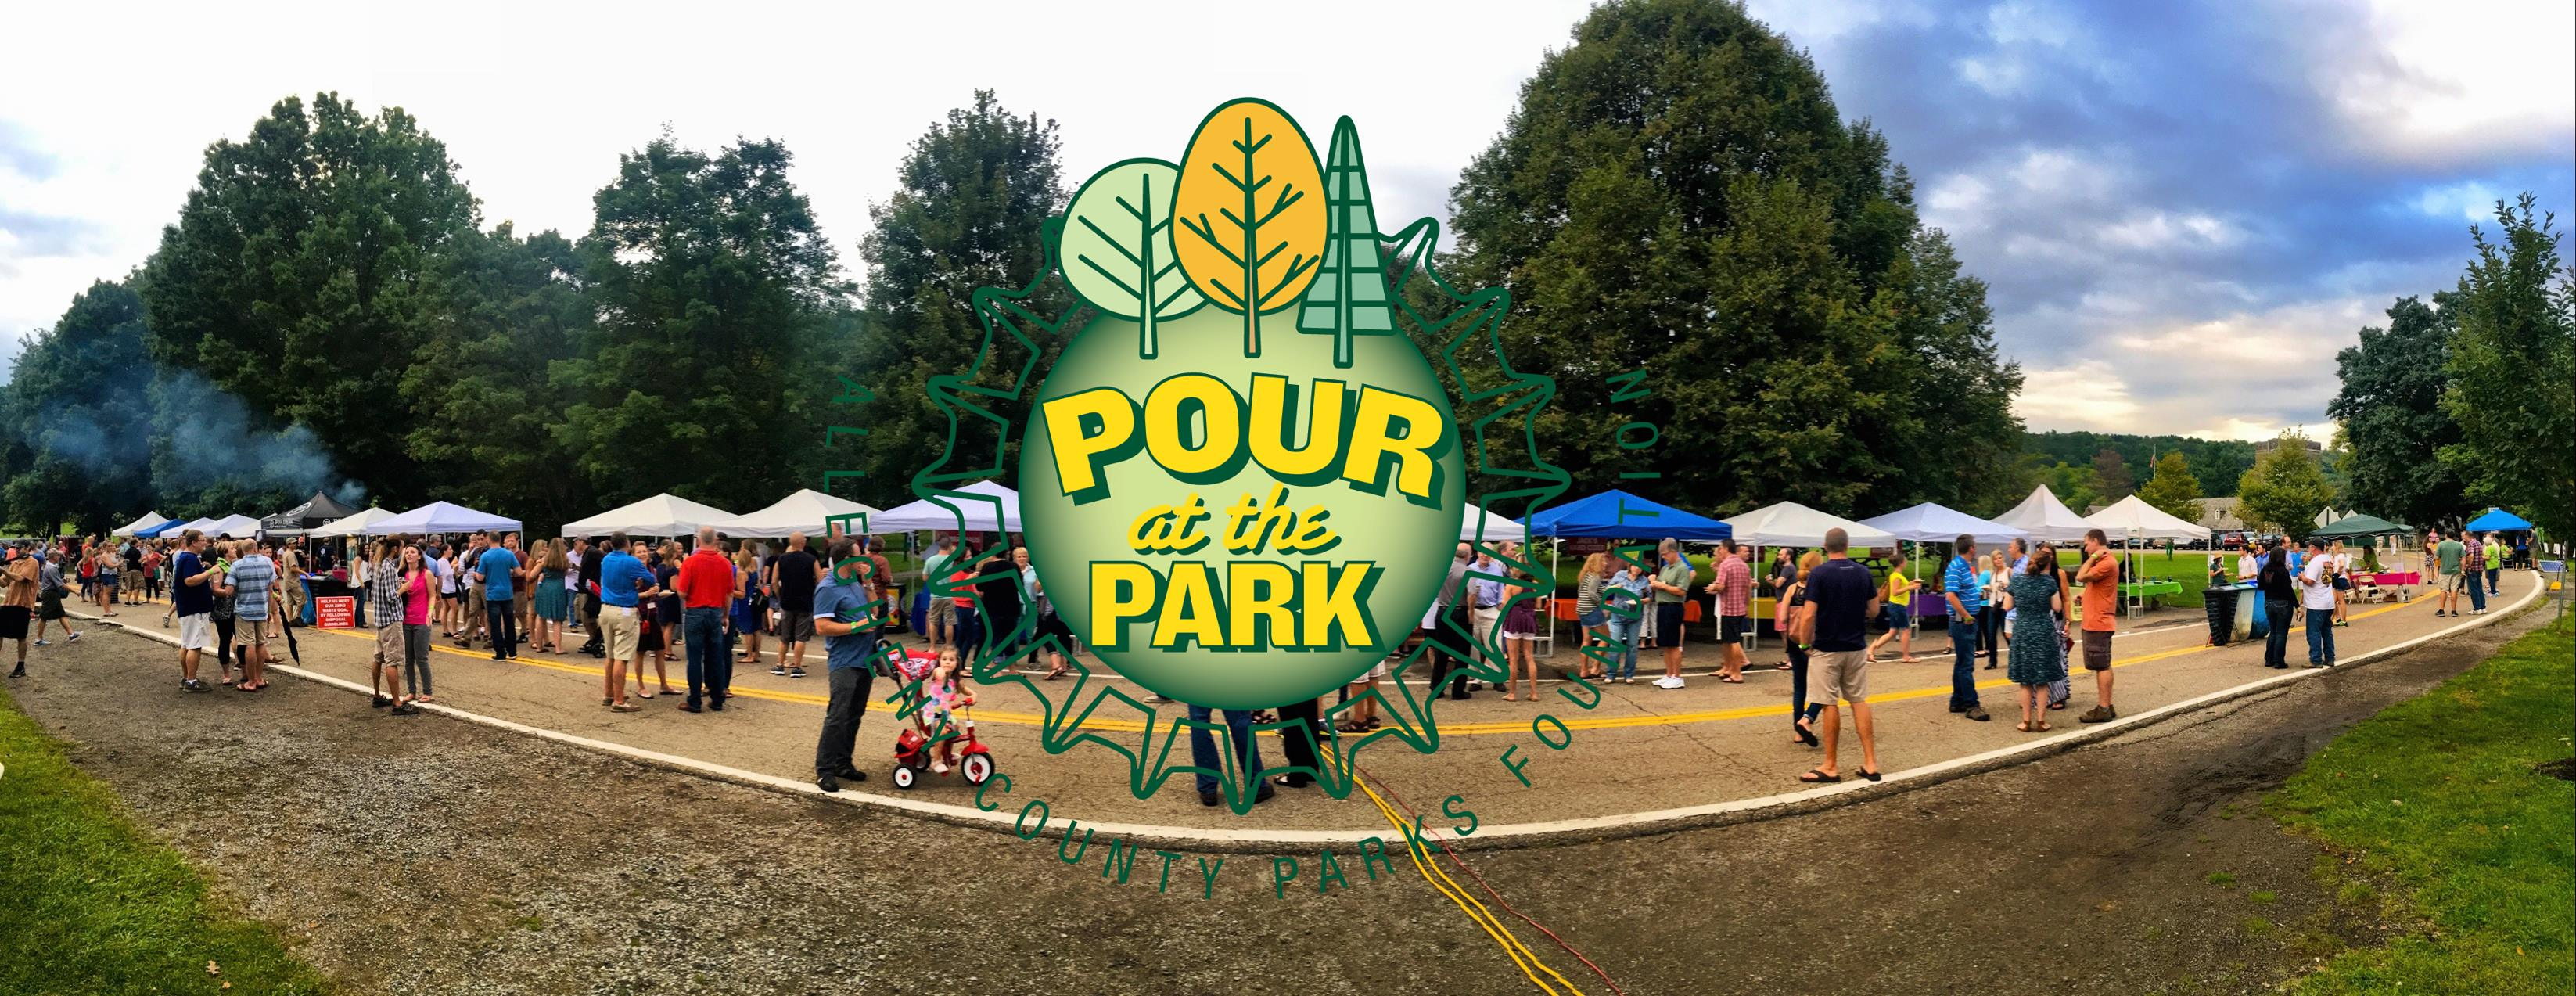 Tickets for Pour at the Park in Allison Park from ShowClix